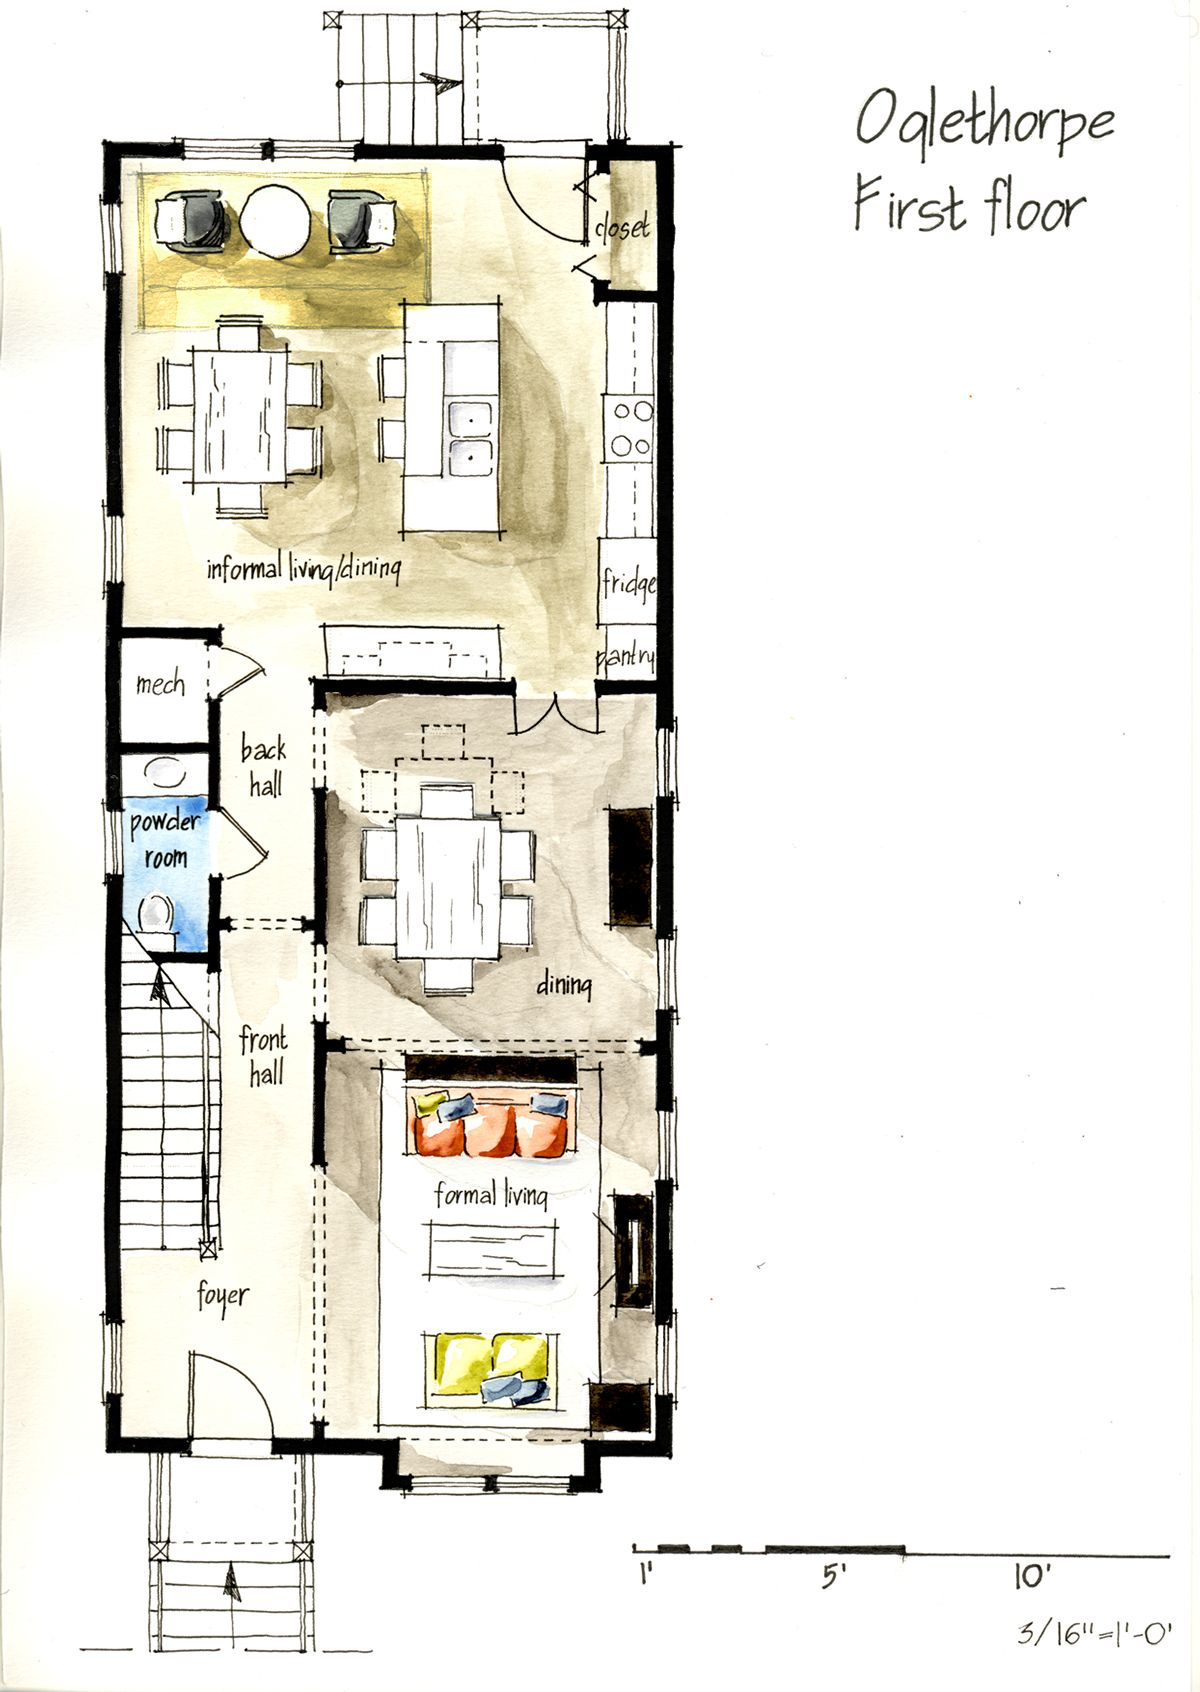 Real estate watercolor 2d floor plans part 1 on behance for Watercolor house plans